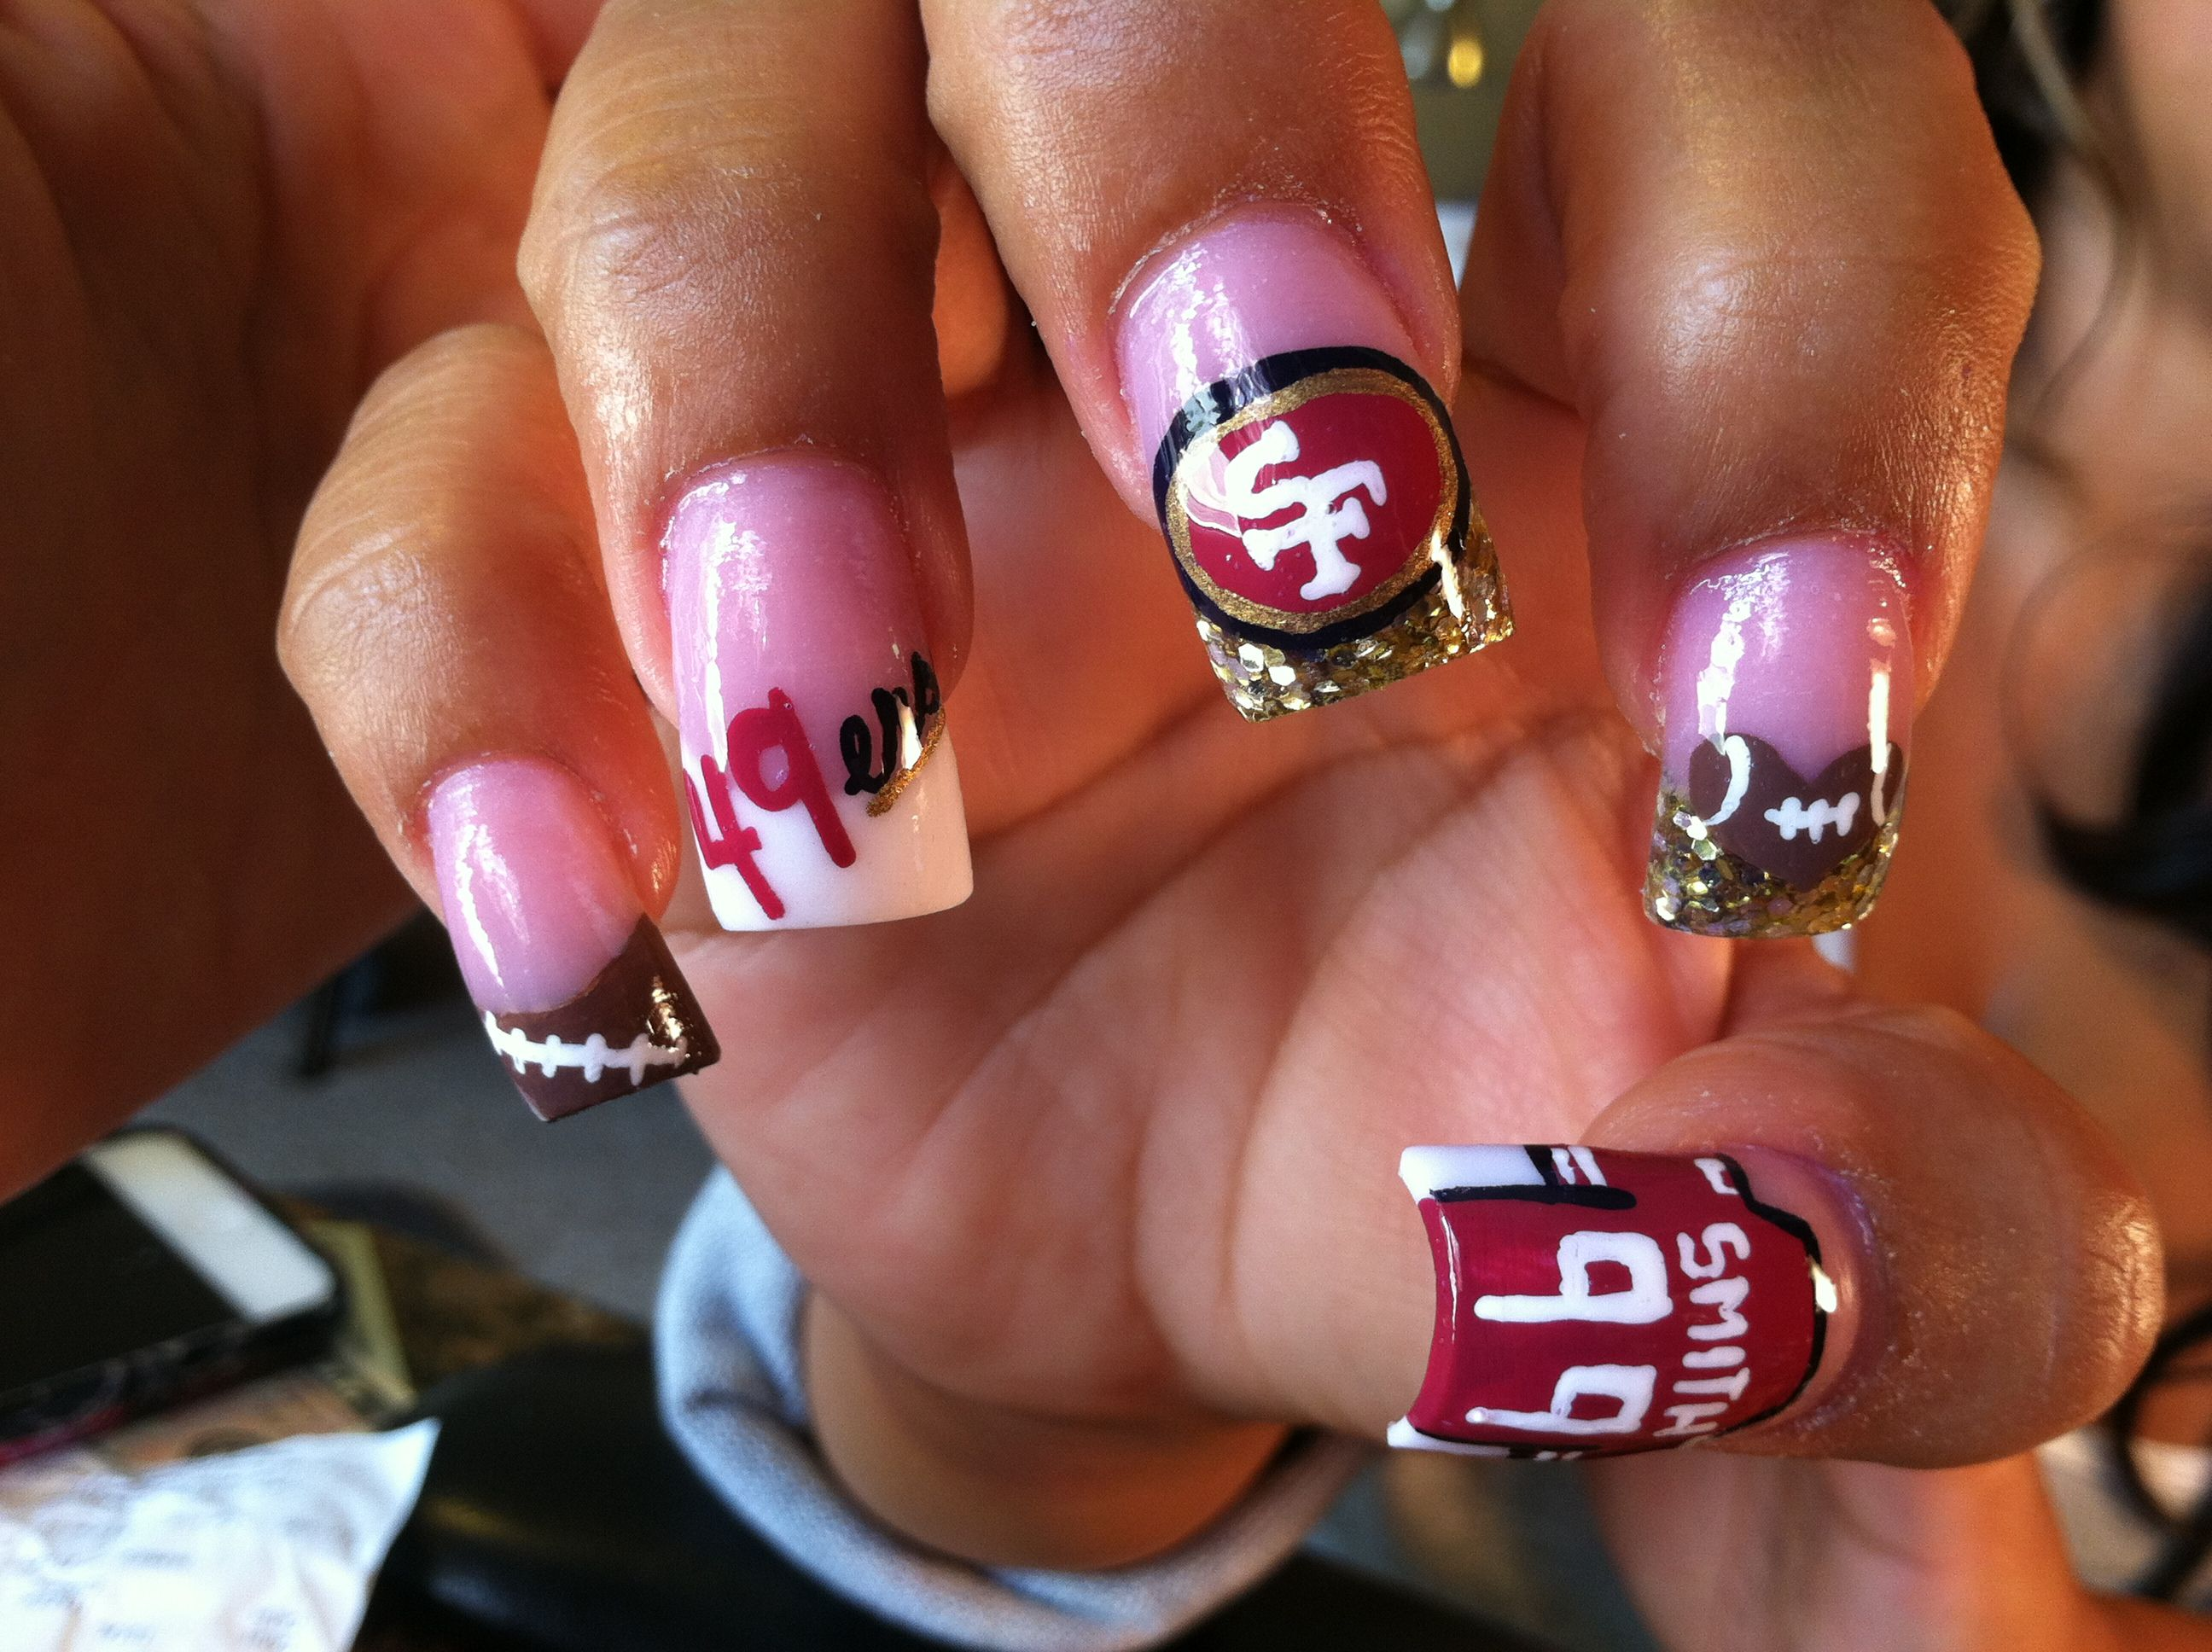 Pin By Shavonne Caster On Why I Love Being A Girl Hair Makeup And Nails Football Nails Sports Nails 49ers Nails